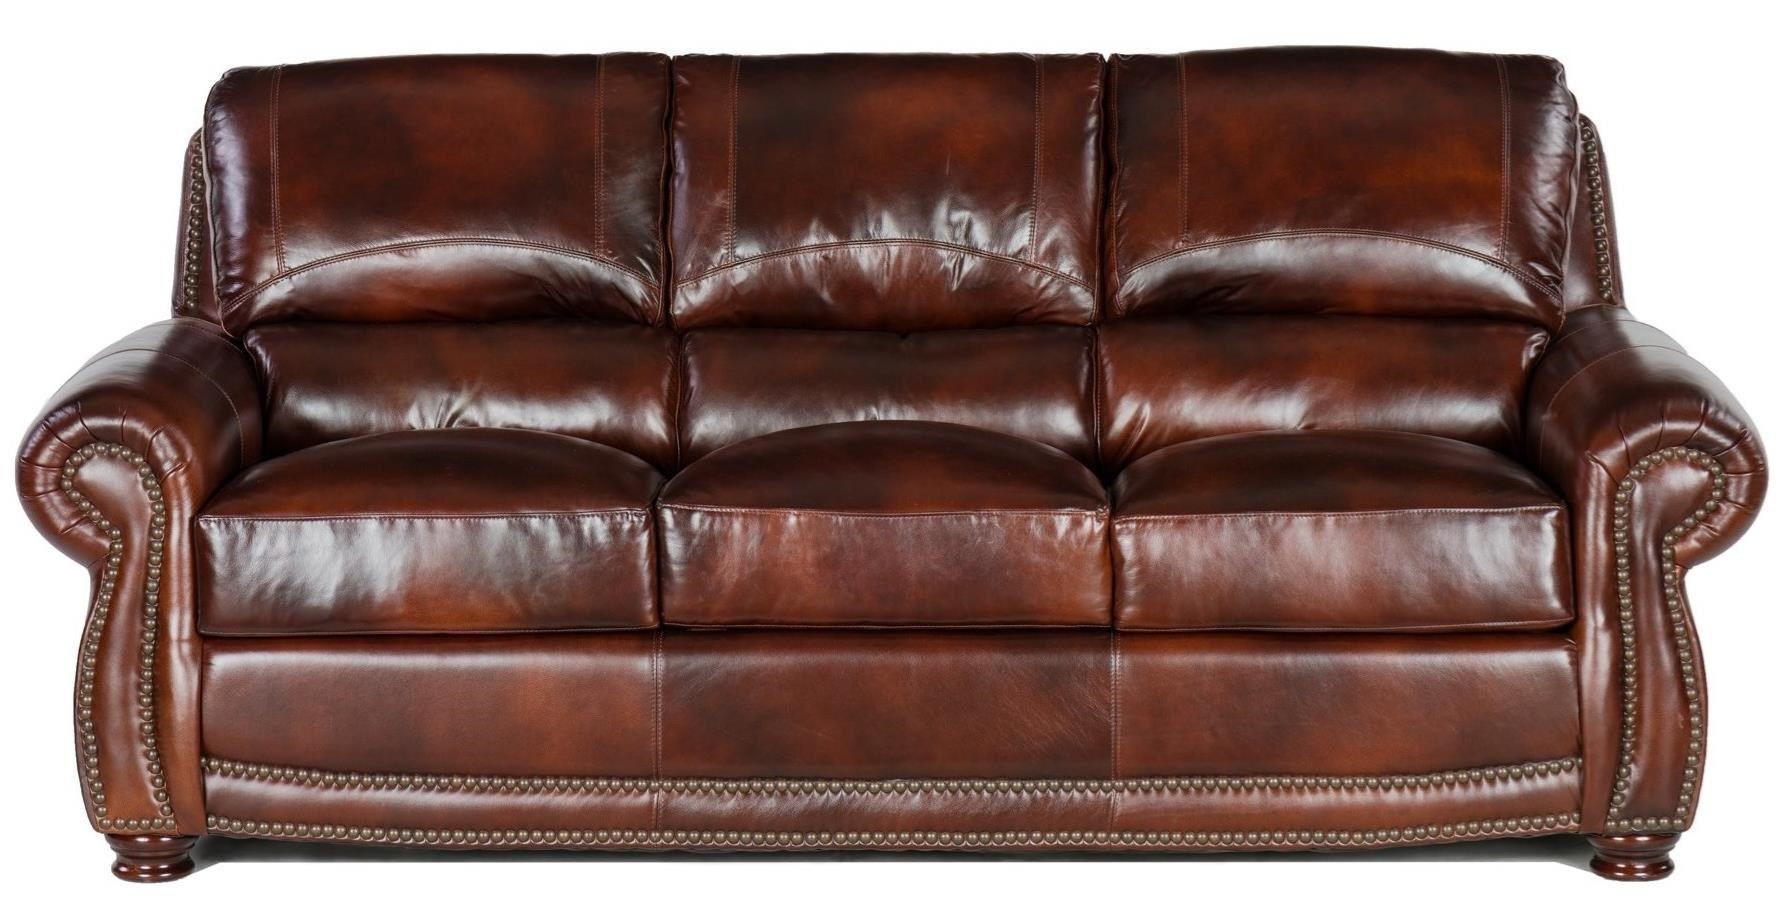 4650 Sofa By Usa Premium Leather At Miskelly Furniture Top Grain Leather Sofa Buy Leather Sofa Leather Sofa